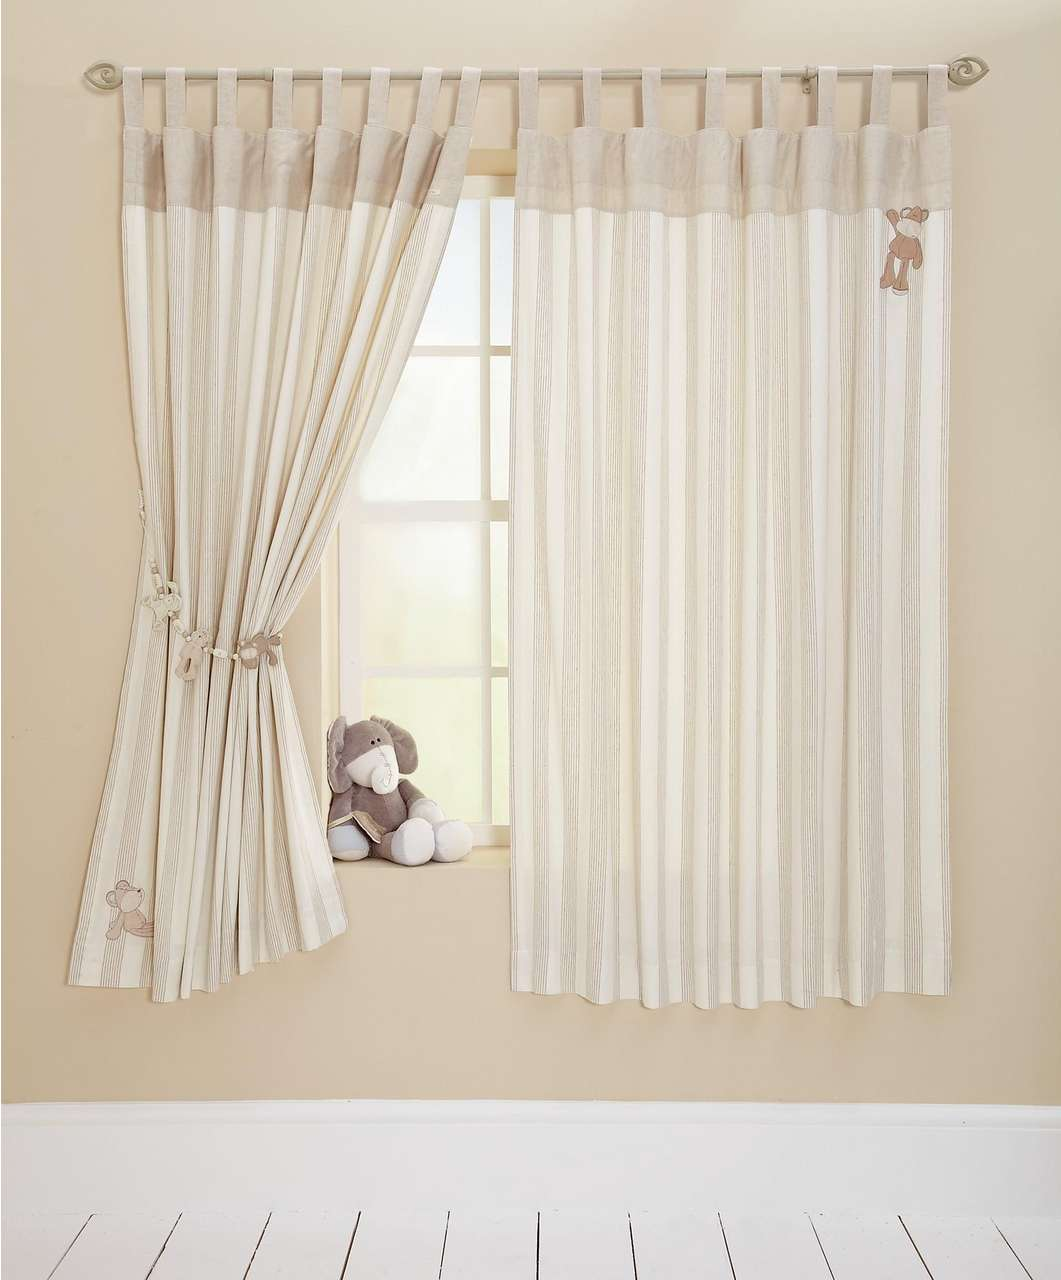 Picture of: Nursery curtains ideas